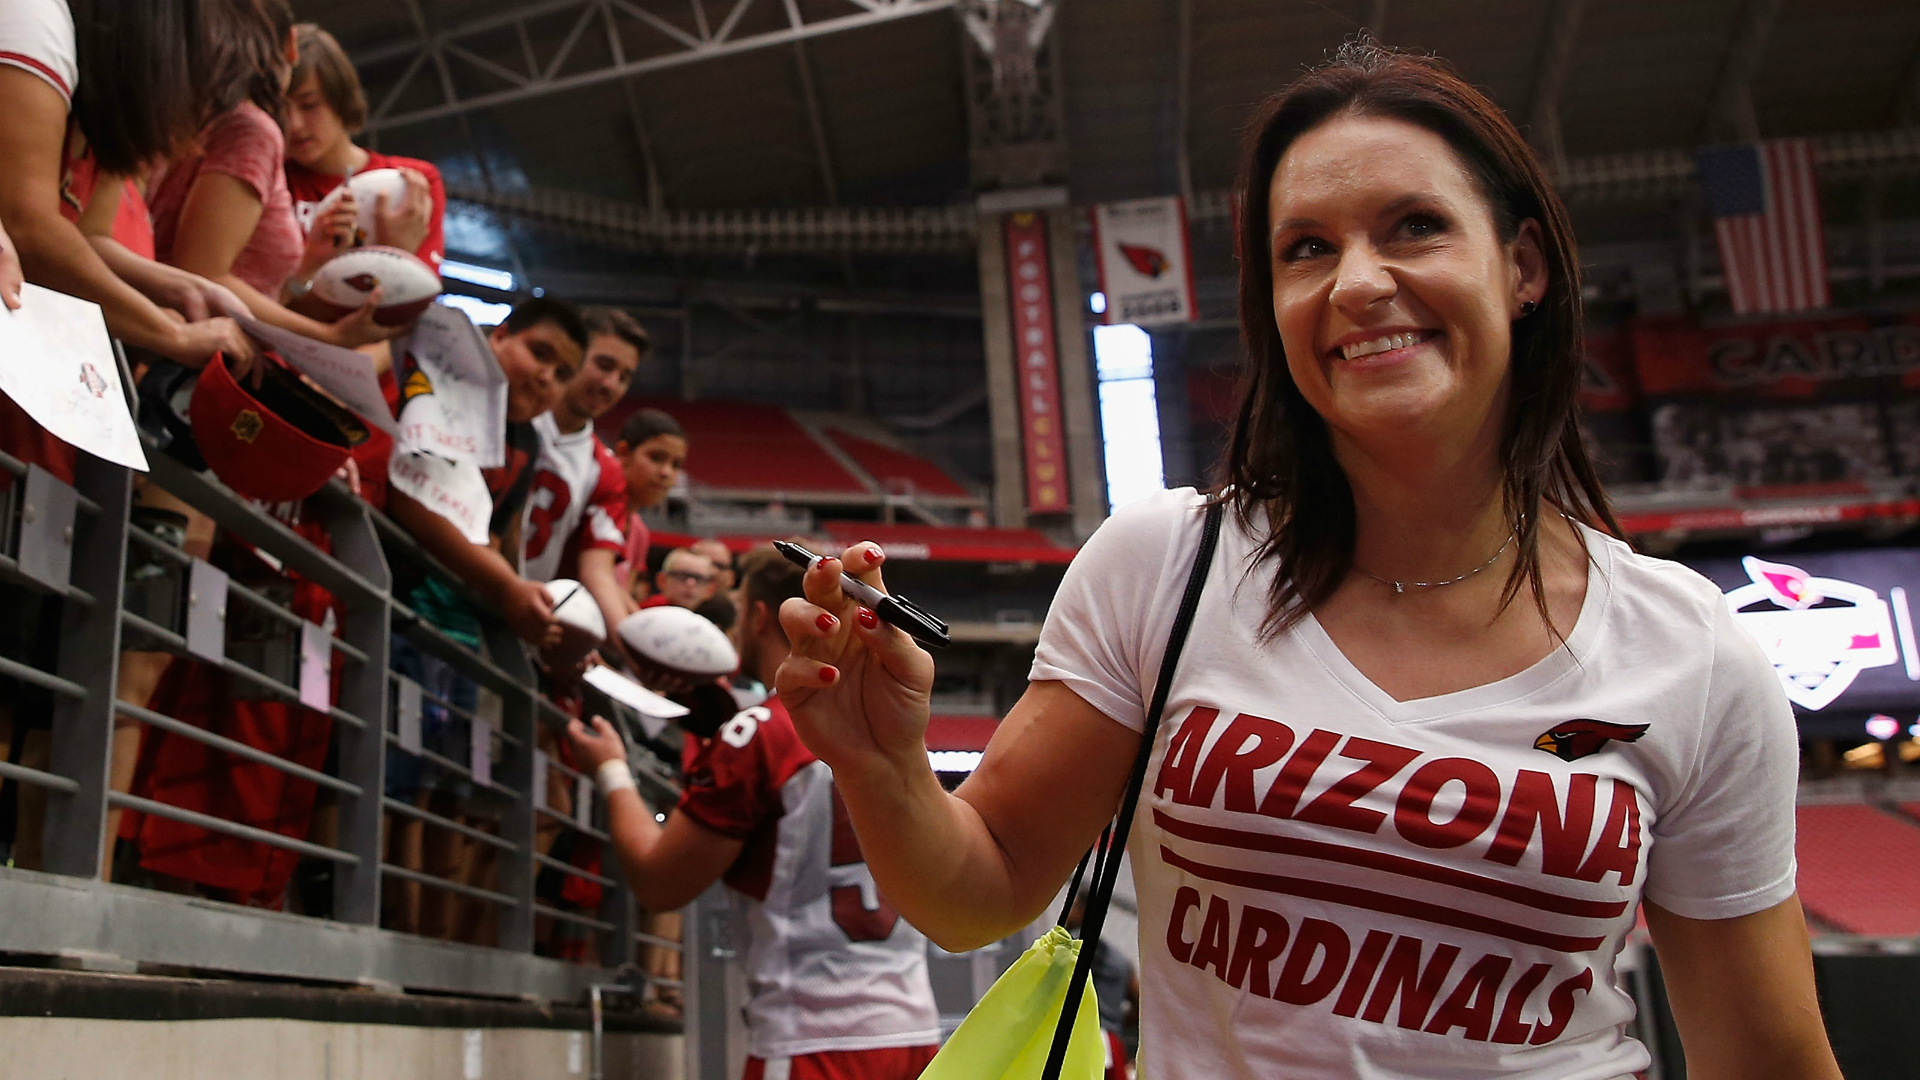 Cardinals' Jen Welter on being hired: 'It's an important step for girls and women'